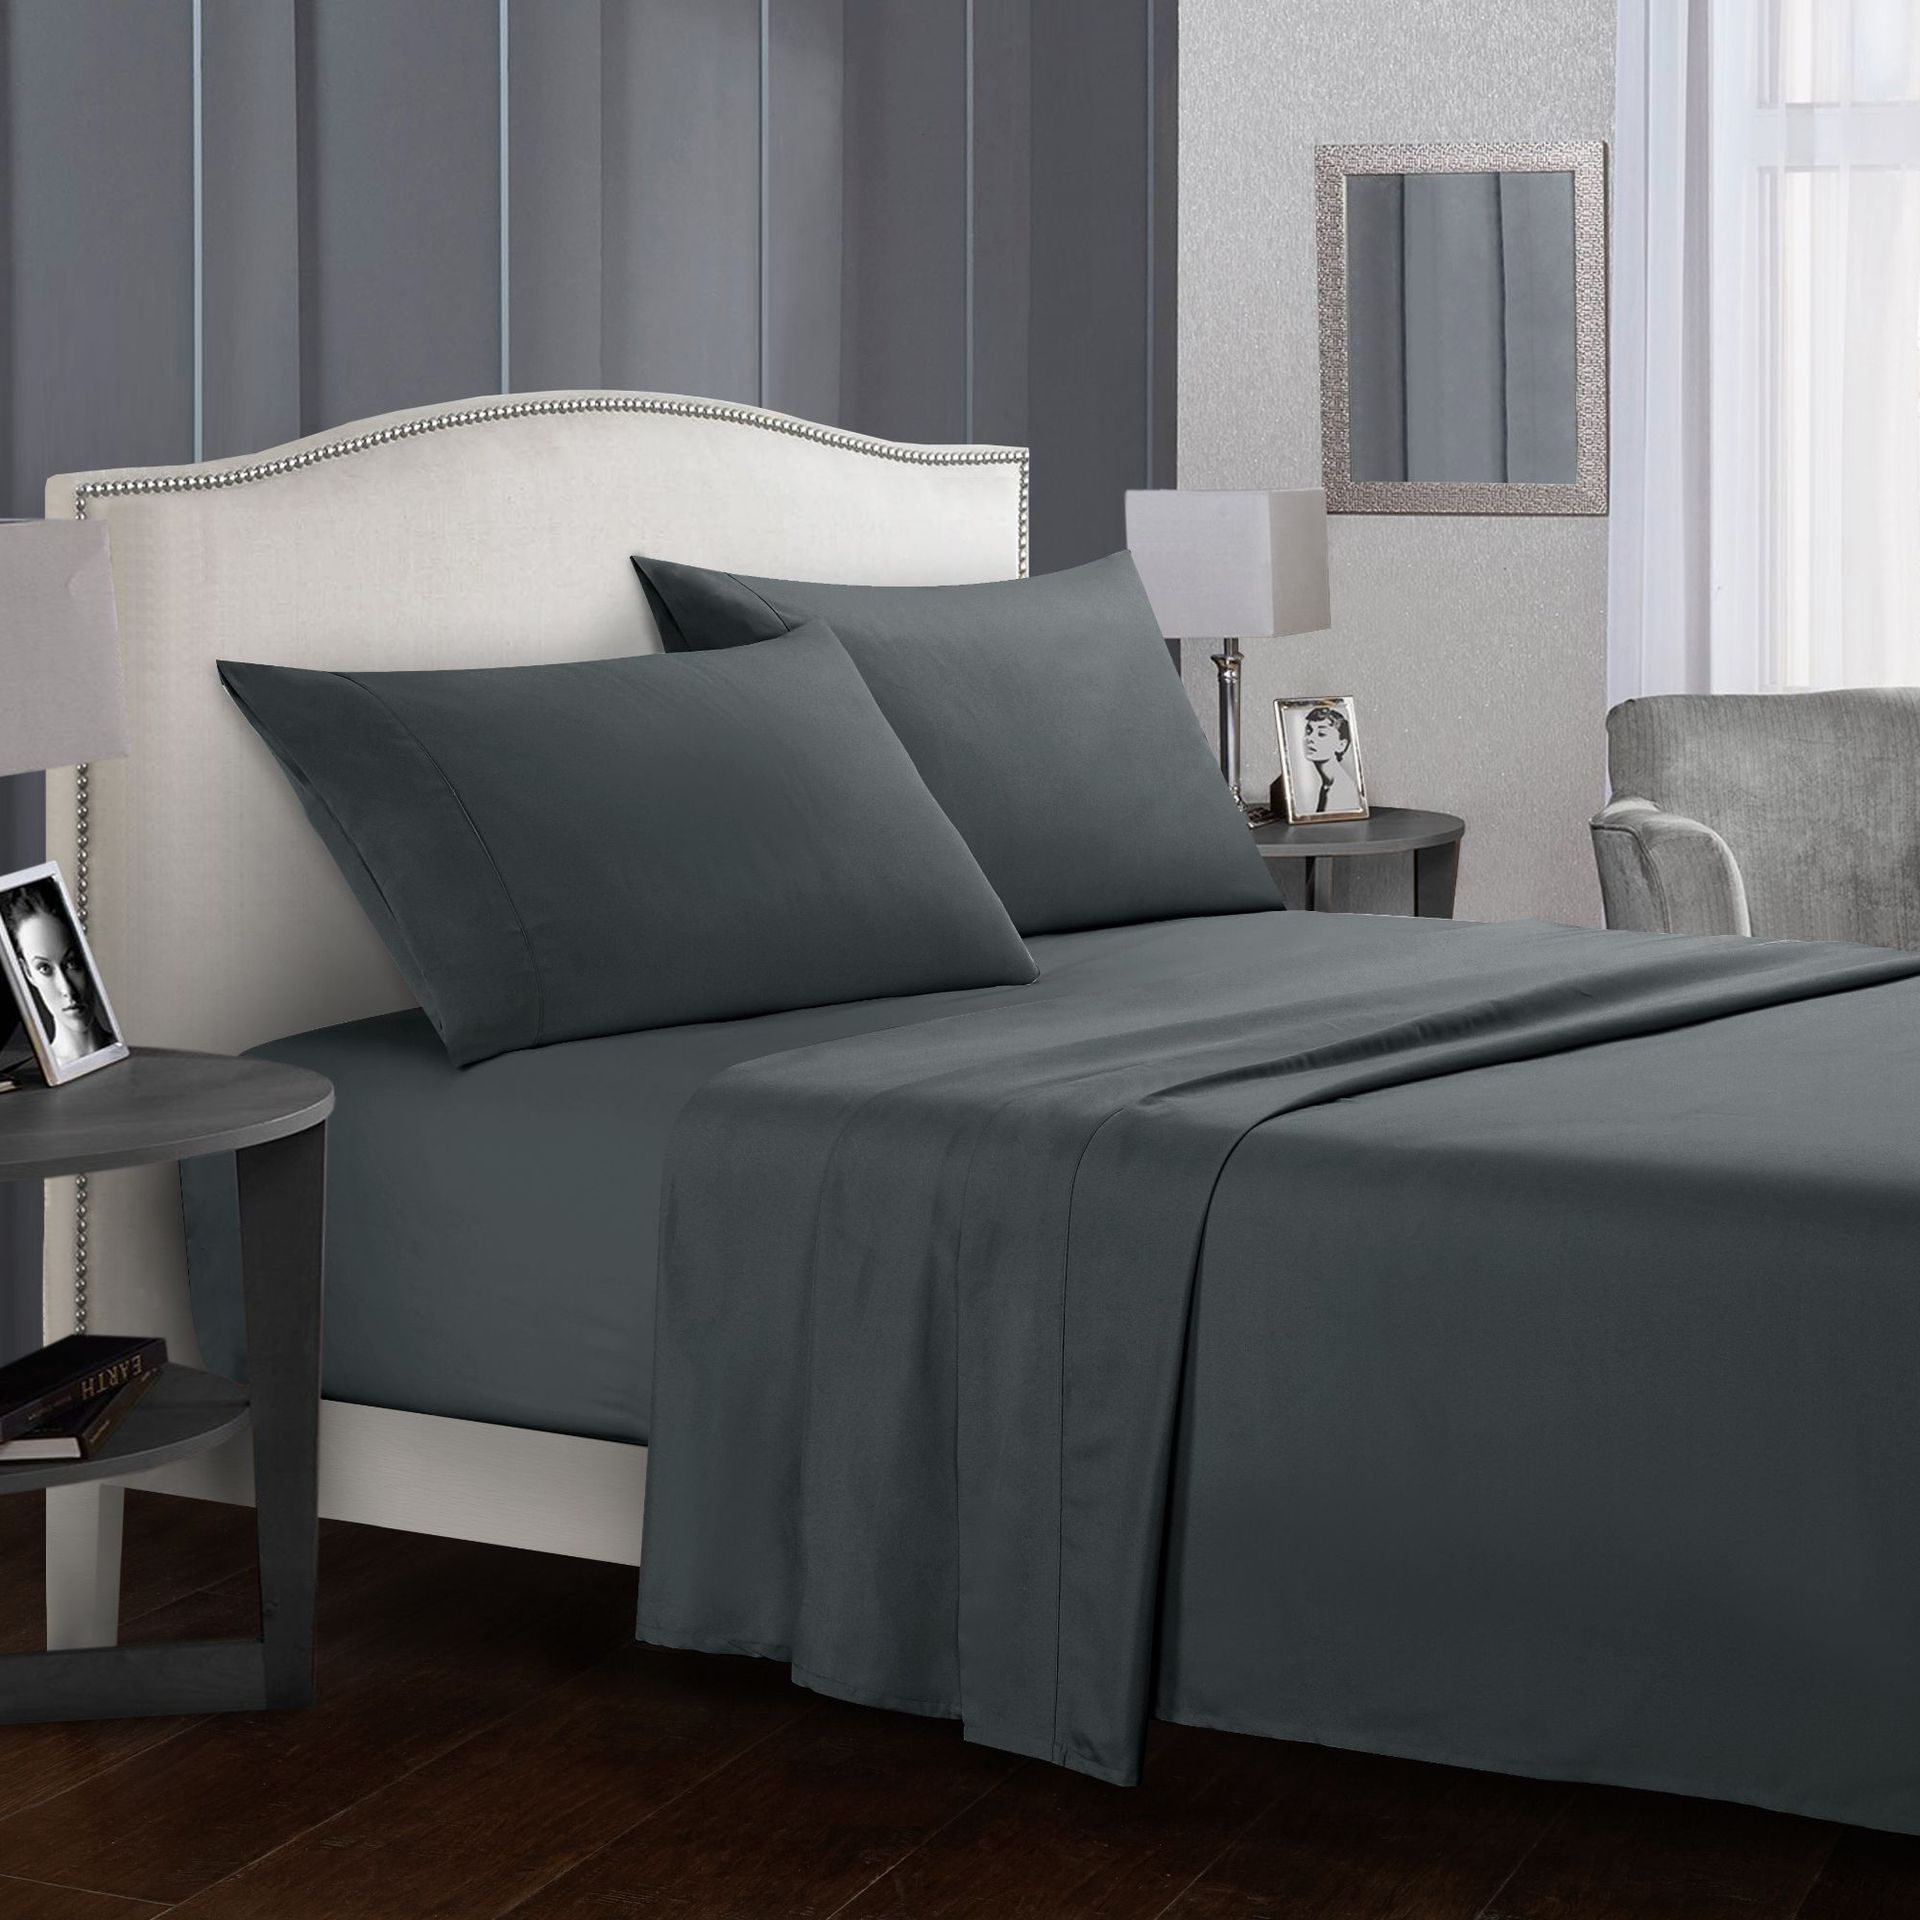 Pure Color Bedding Set Bed Linens Flat Sheet Fitted Sheet Pillowcase Queen King Size Gray Soft